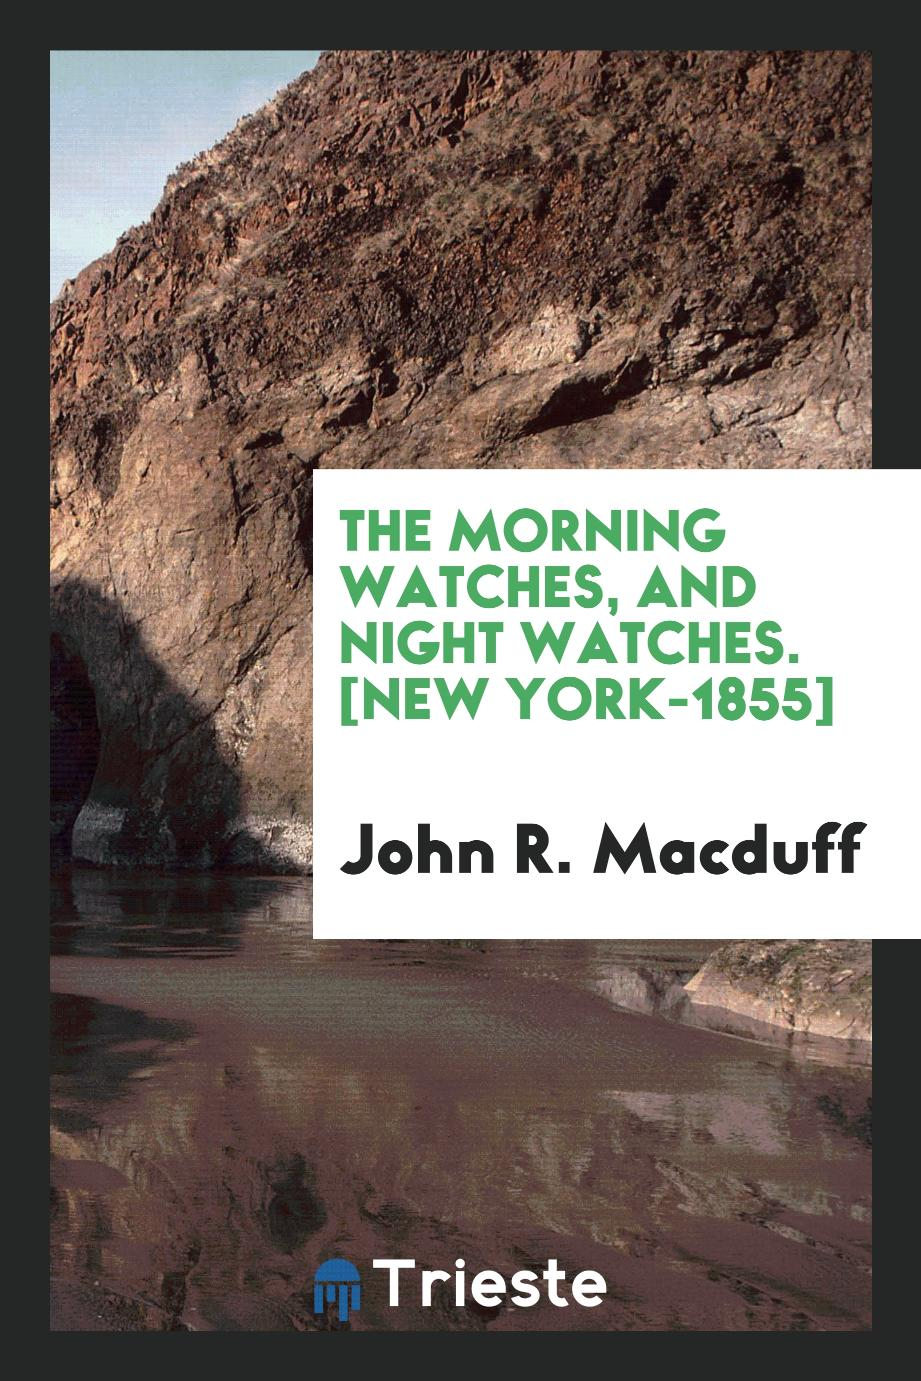 The Morning Watches, and Night Watches. [New York-1855]